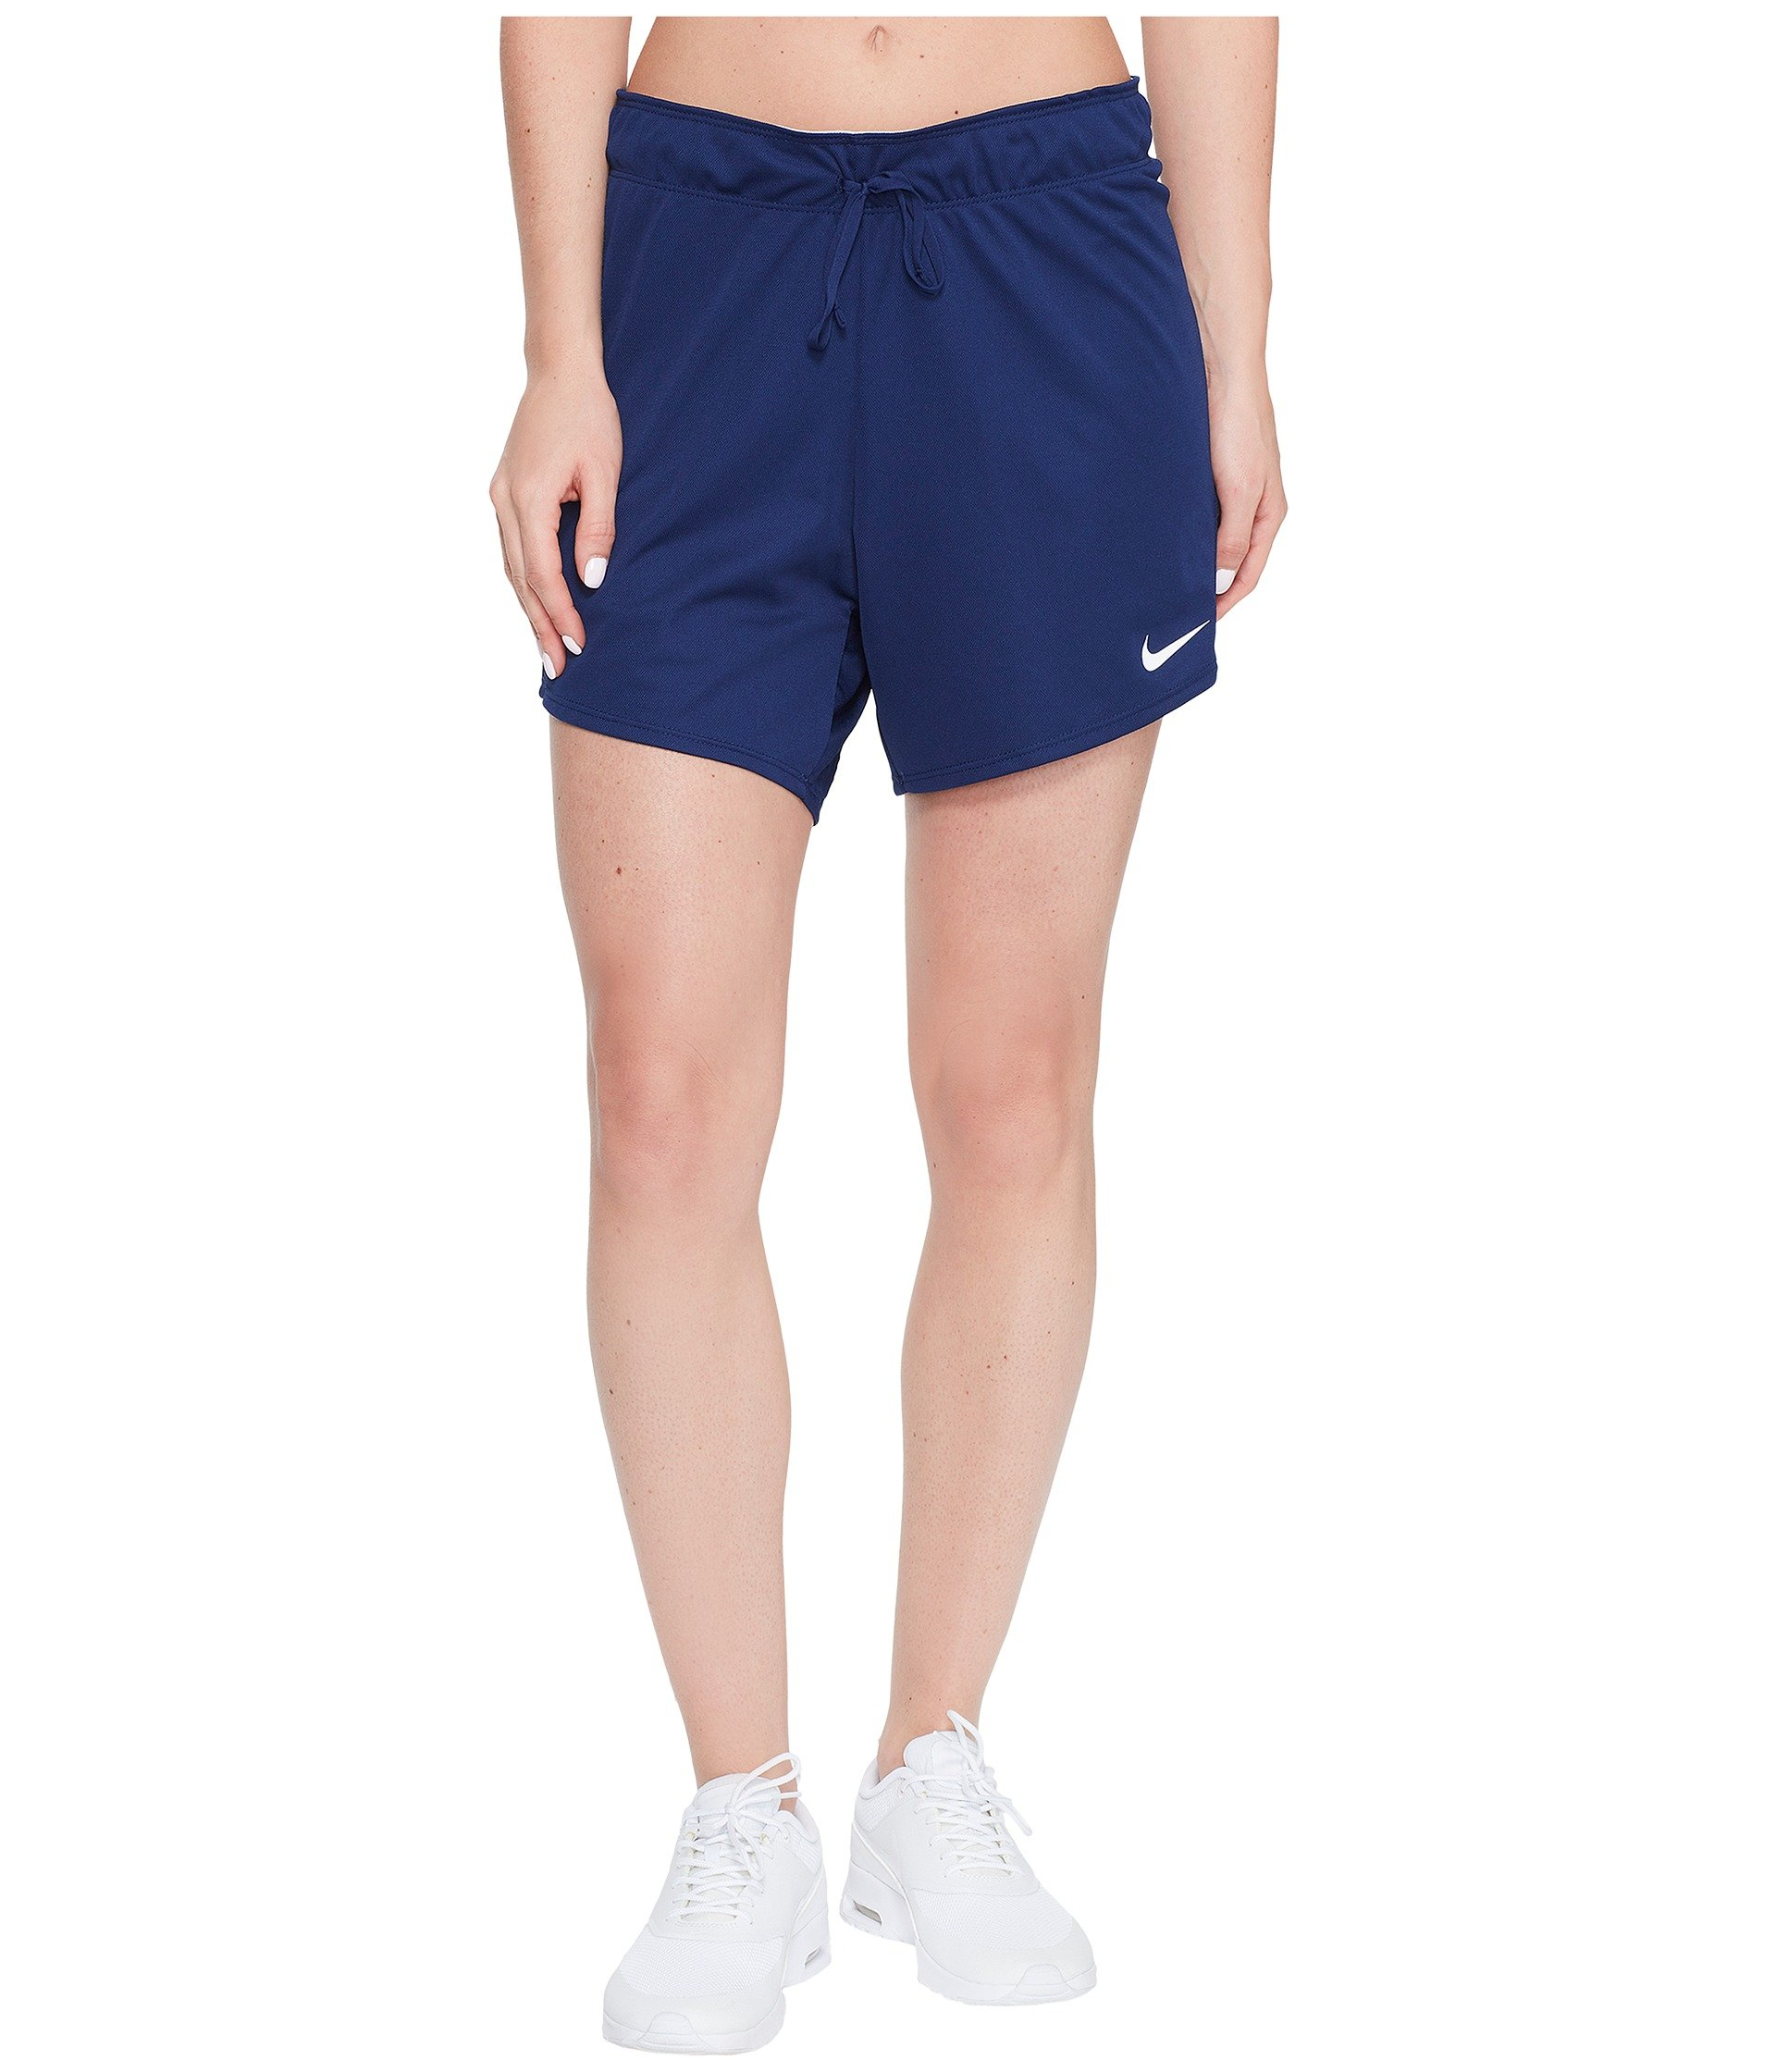 Nike Women's 5'' Dry Dri-Fit Attack Shorts Navy Blue 885273 429 (Small 5) by Nike